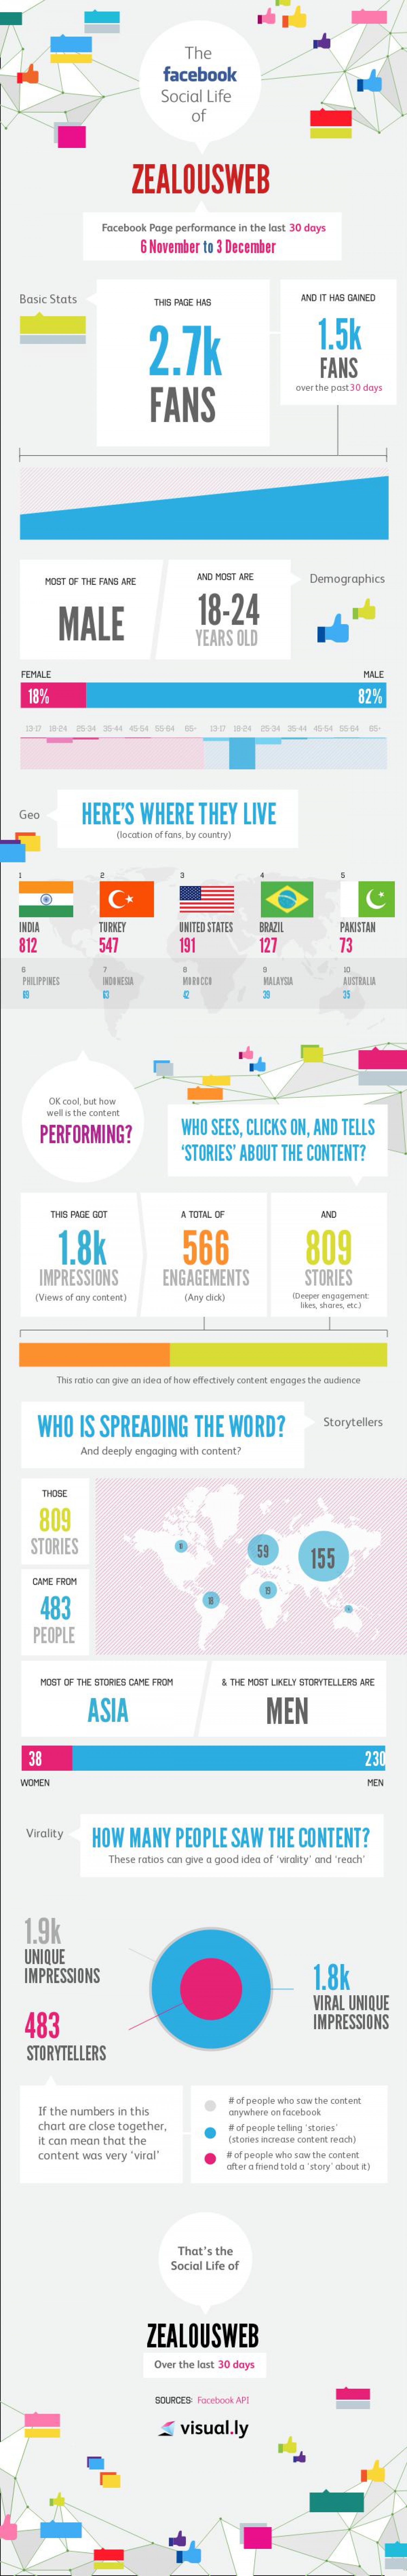 Facebook Insights of ZealousWeb Technologies Pvt. Ltd. Infographic